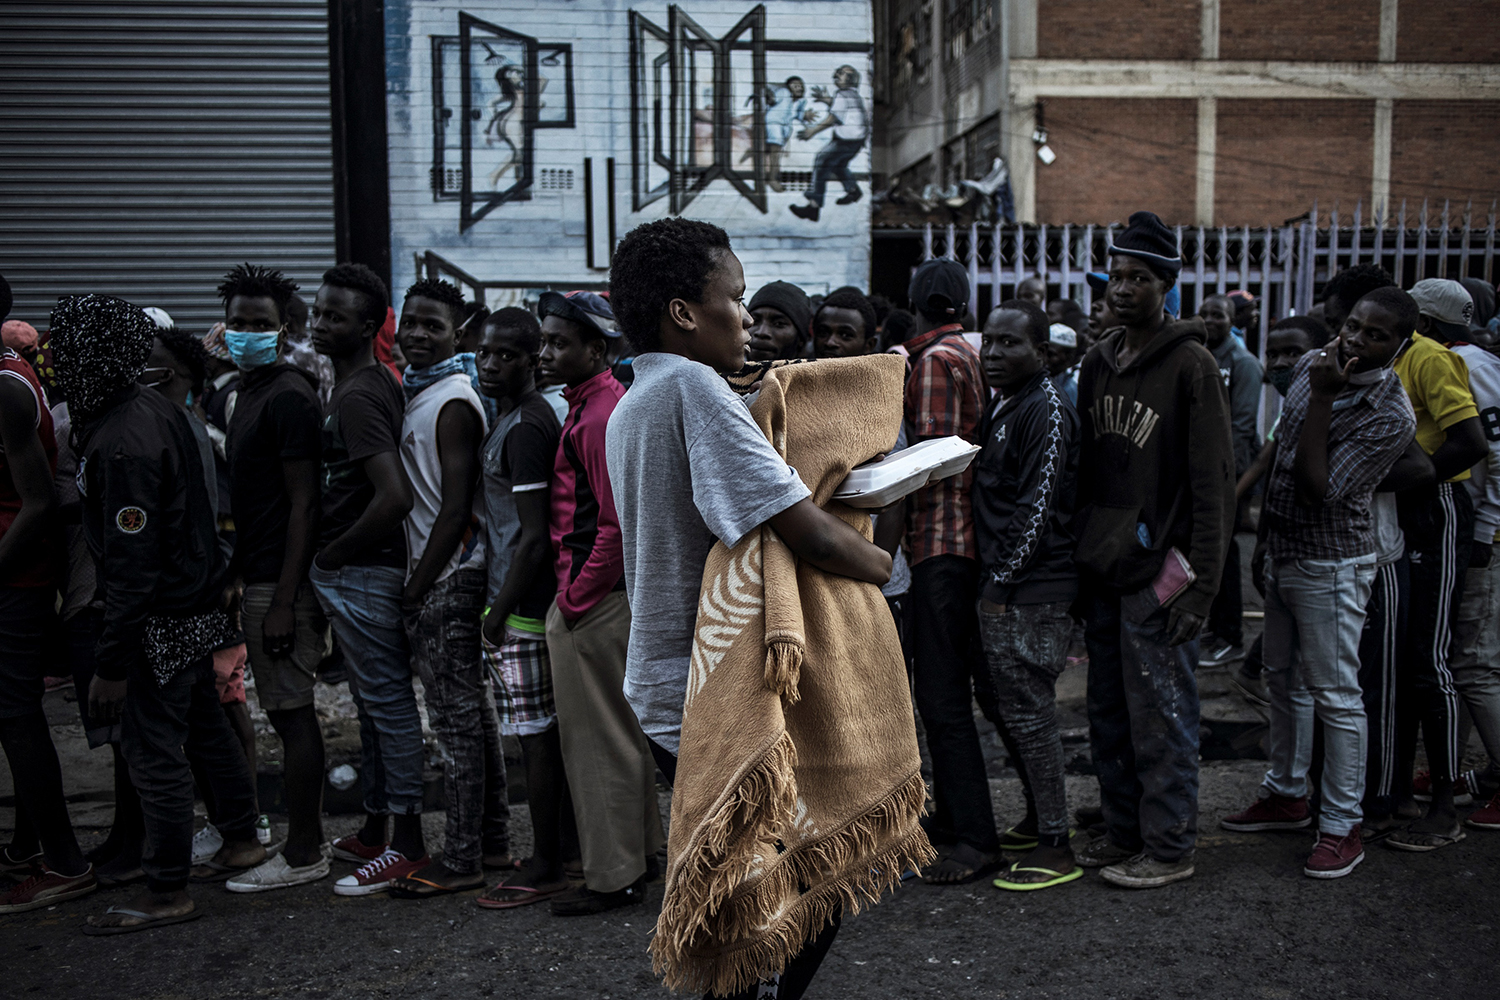 A man walks past people lined up to receive food distributed by a local Muslim welfare organization in the Kwa Mai Mai area of the Johannesburg, South Africa, on May 5. MARCO LONGARI/AFP via Getty Images